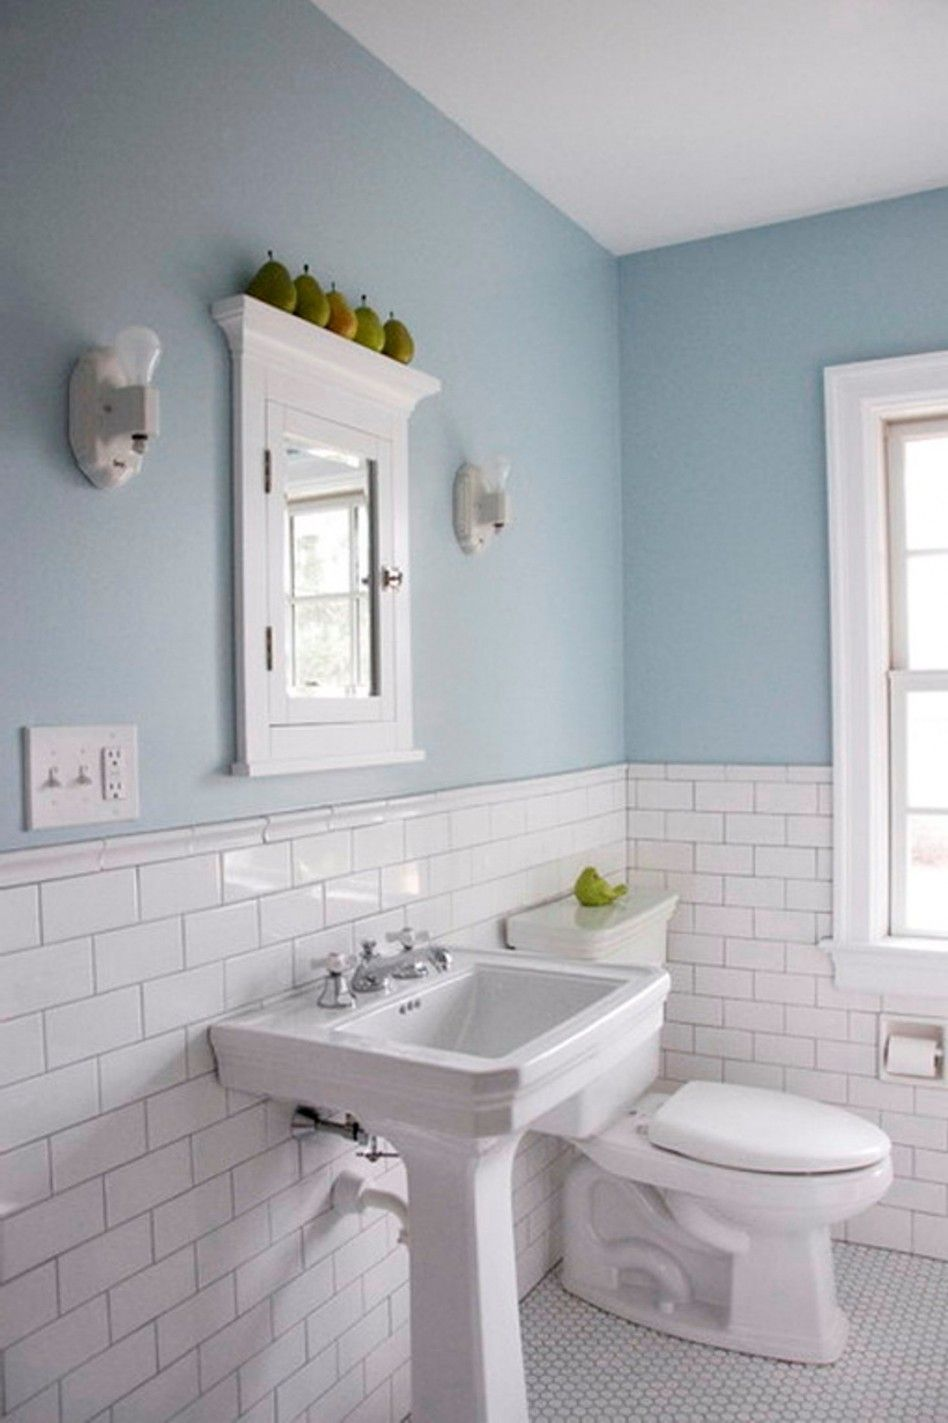 Traditional bathroom tile ideas - White Subyway Color Combination Traditional Bathroom Floor Tile Also Wahbasin Water Closet And Ceramics Tile Half